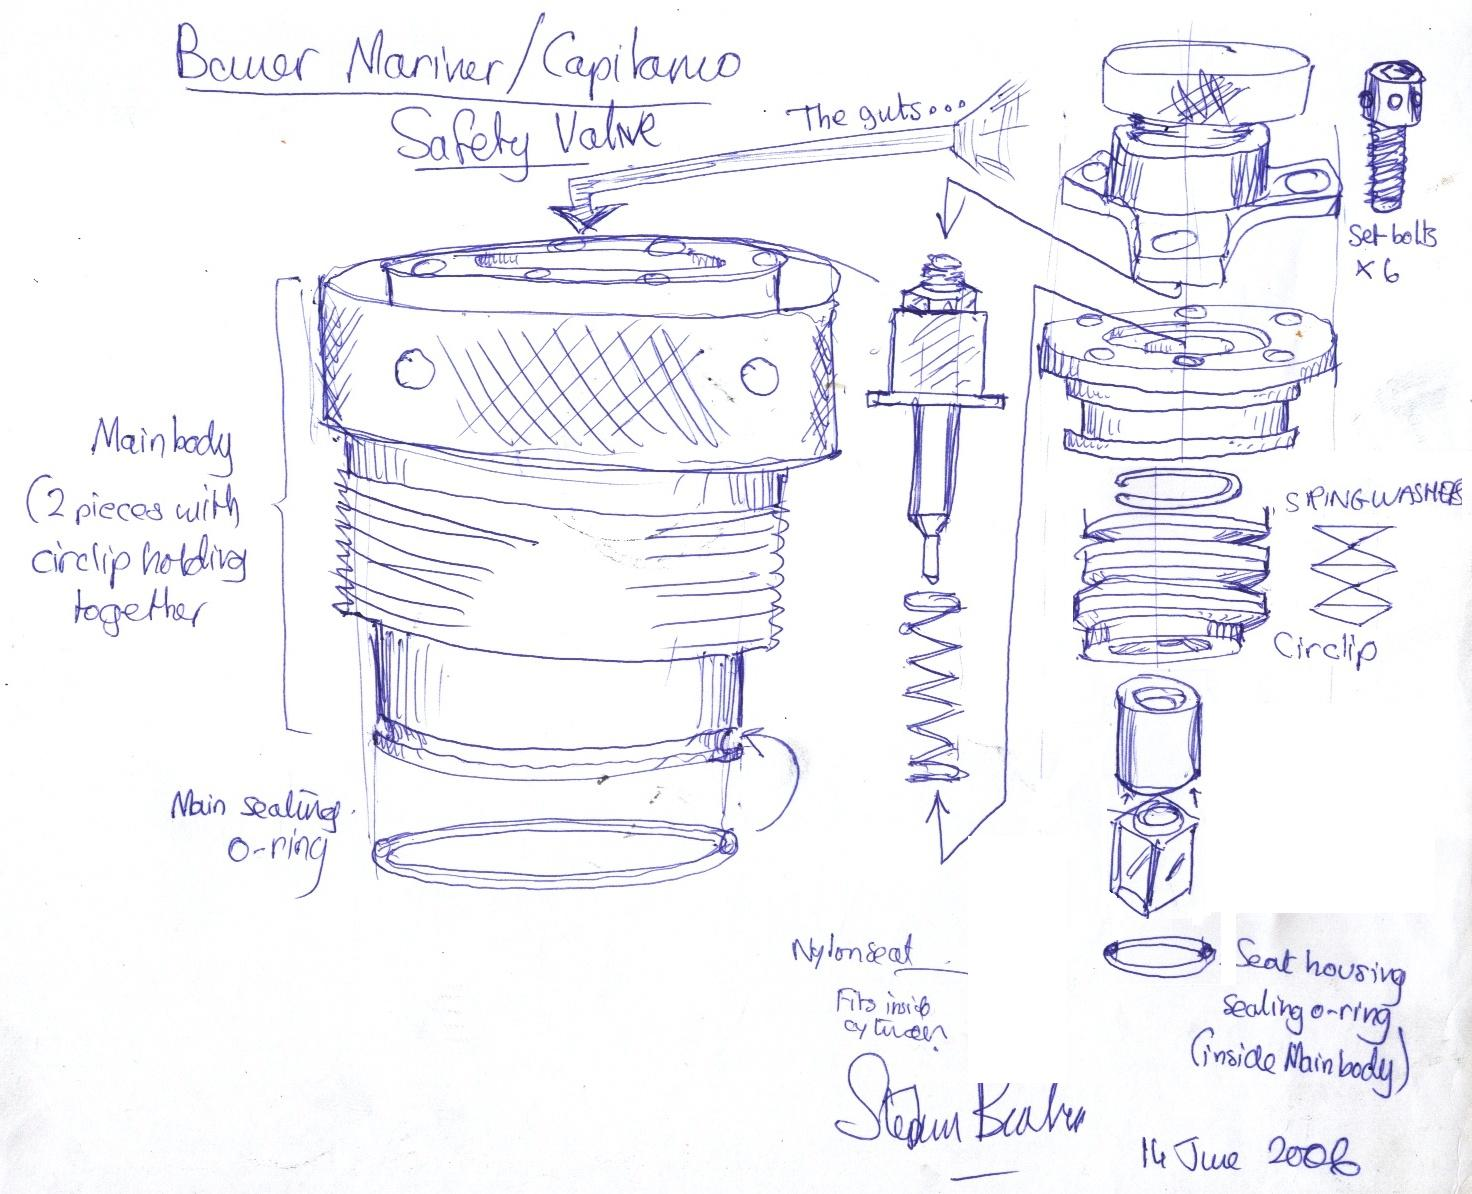 hight resolution of bauer compressor safety valve note that it may be illegal for a lay person to